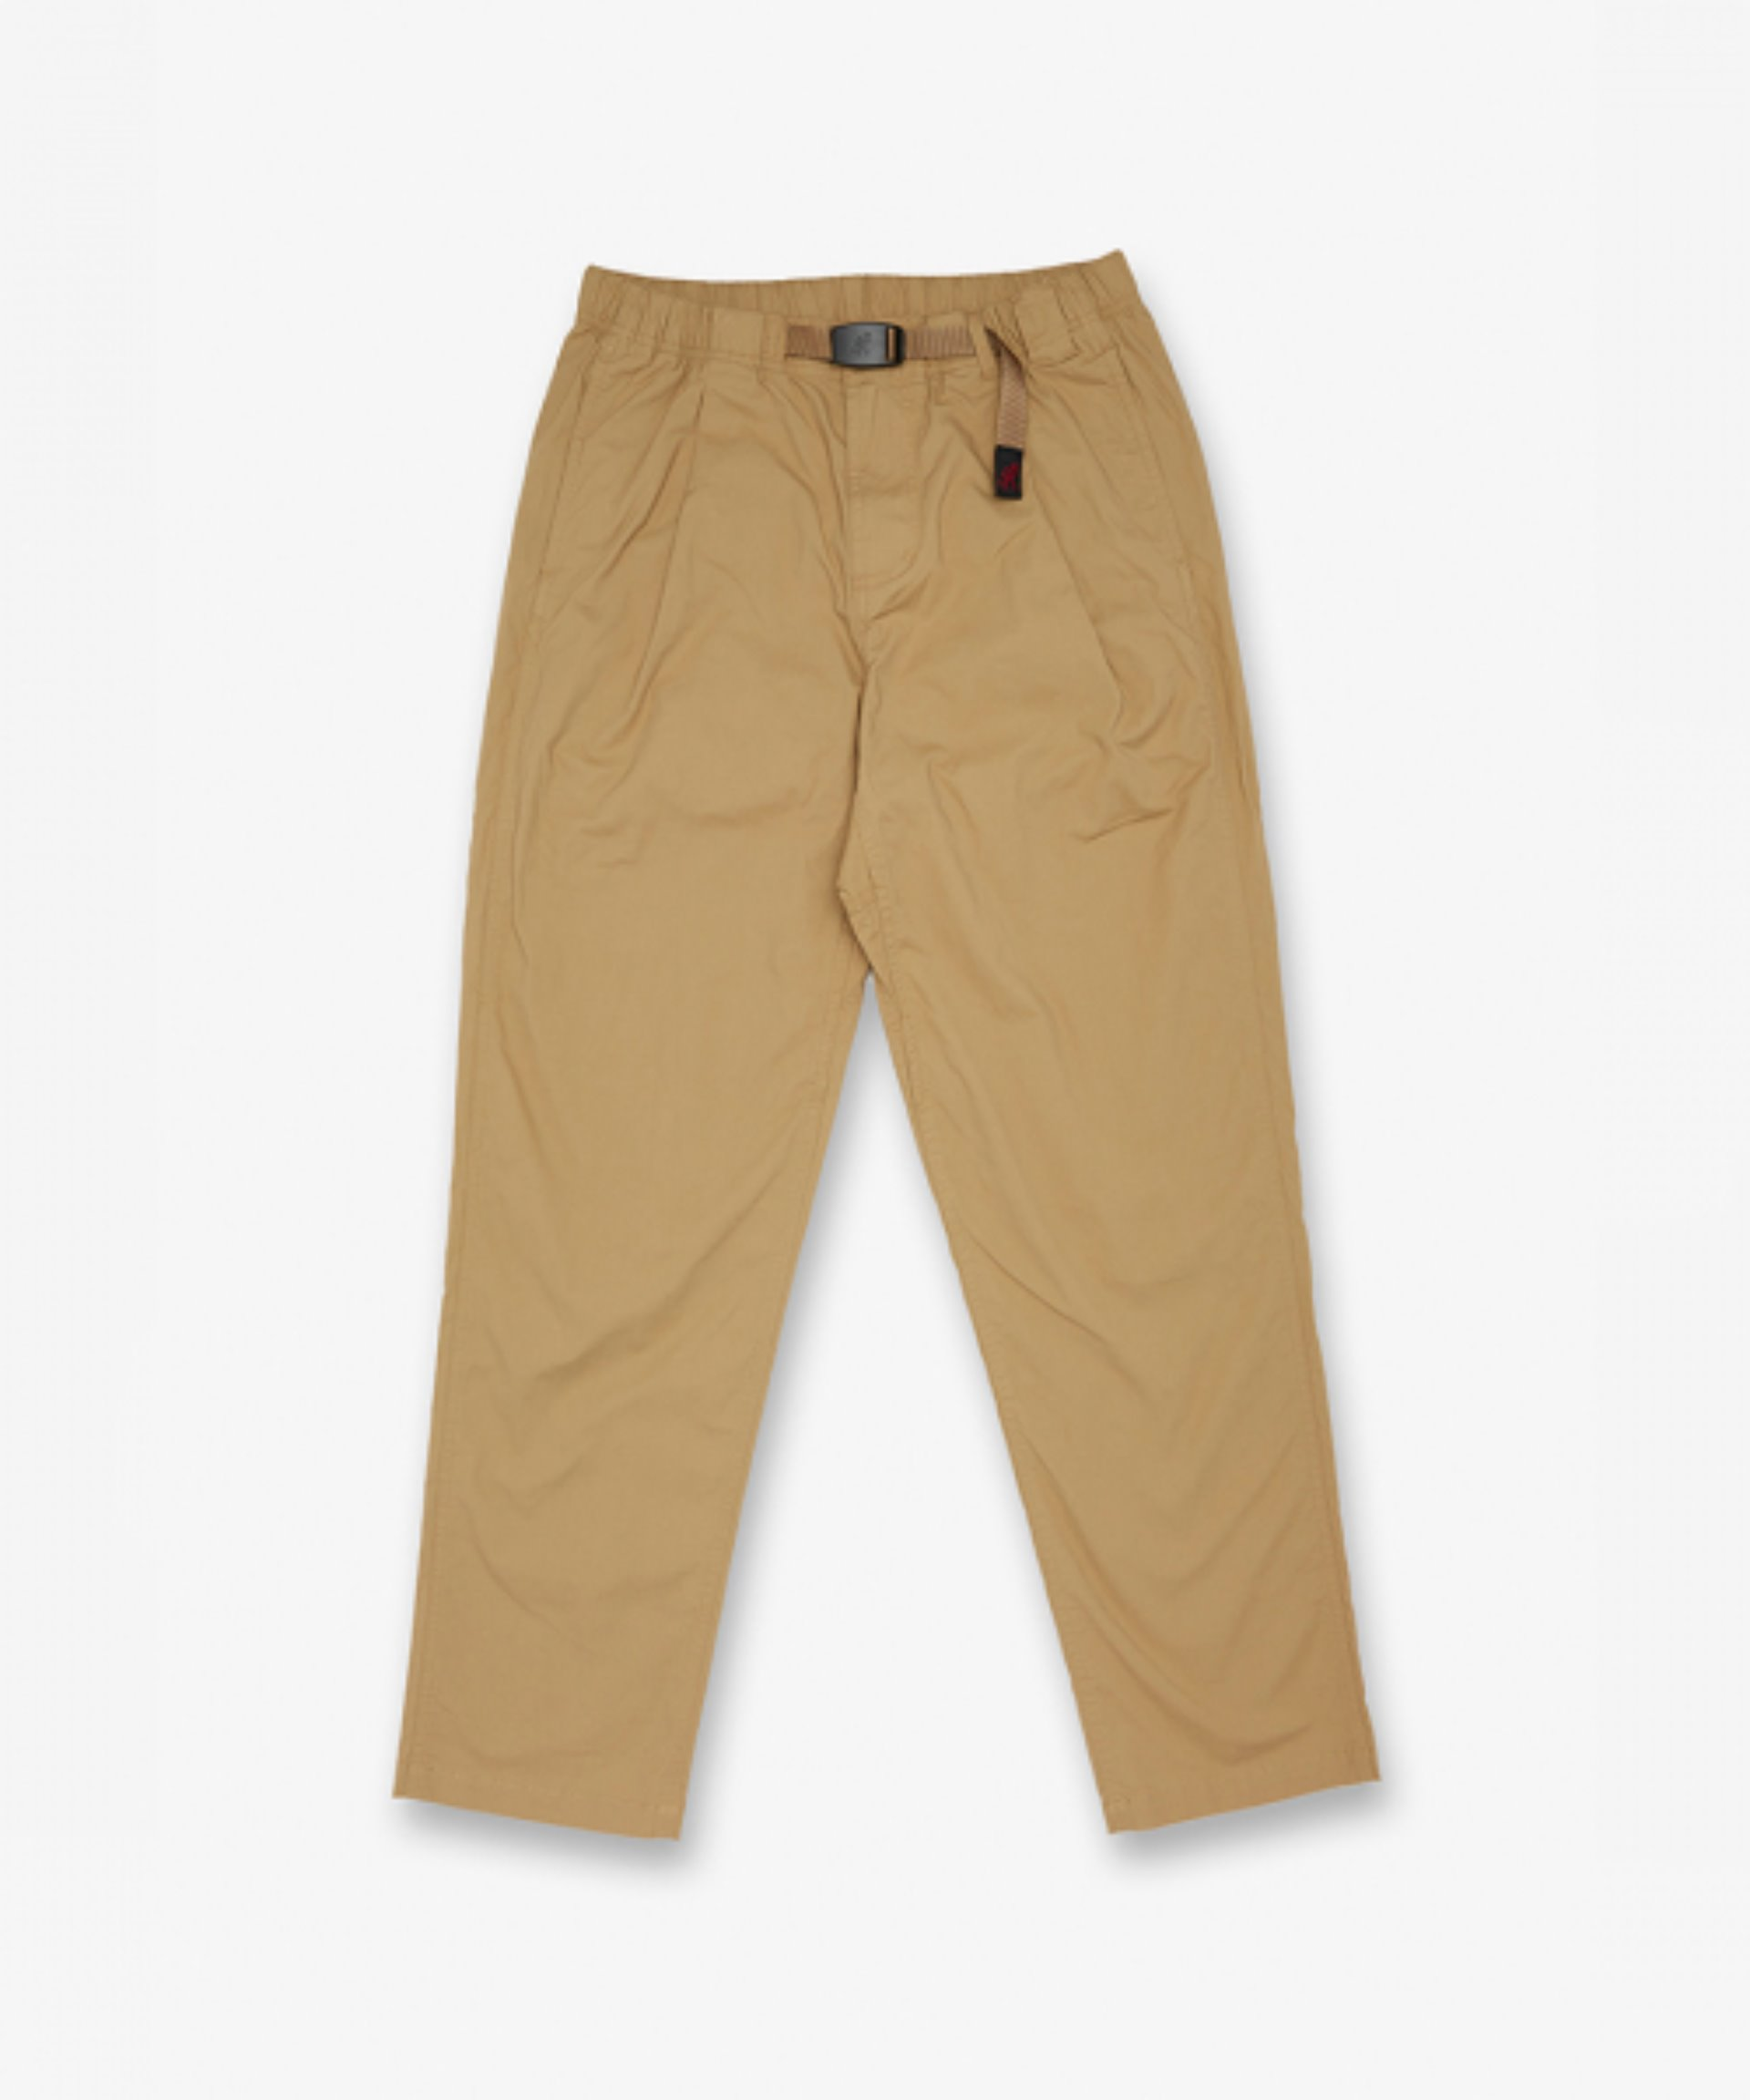 WEATHER 1 TUCK PANTS(SAND)